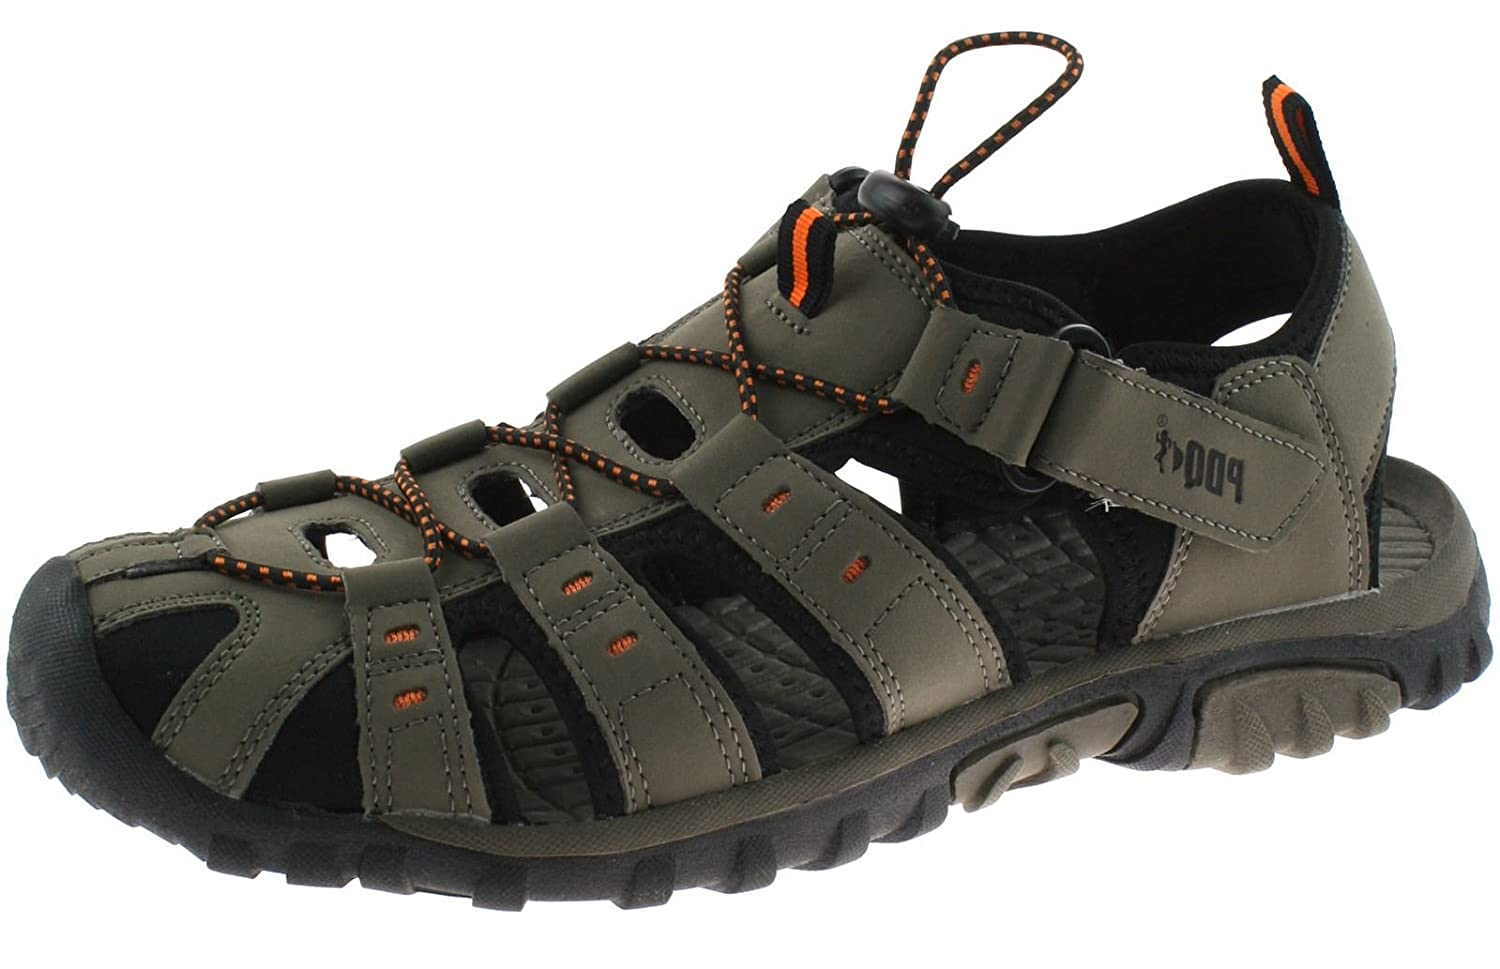 a8c8bdfd2291 PDQ Mens Gents Elastic Toggle   Velcro Fastening Sports Trail Walking  Closed Toe Comfy Sturdy Sandals  Amazon.co.uk  Shoes   Bags